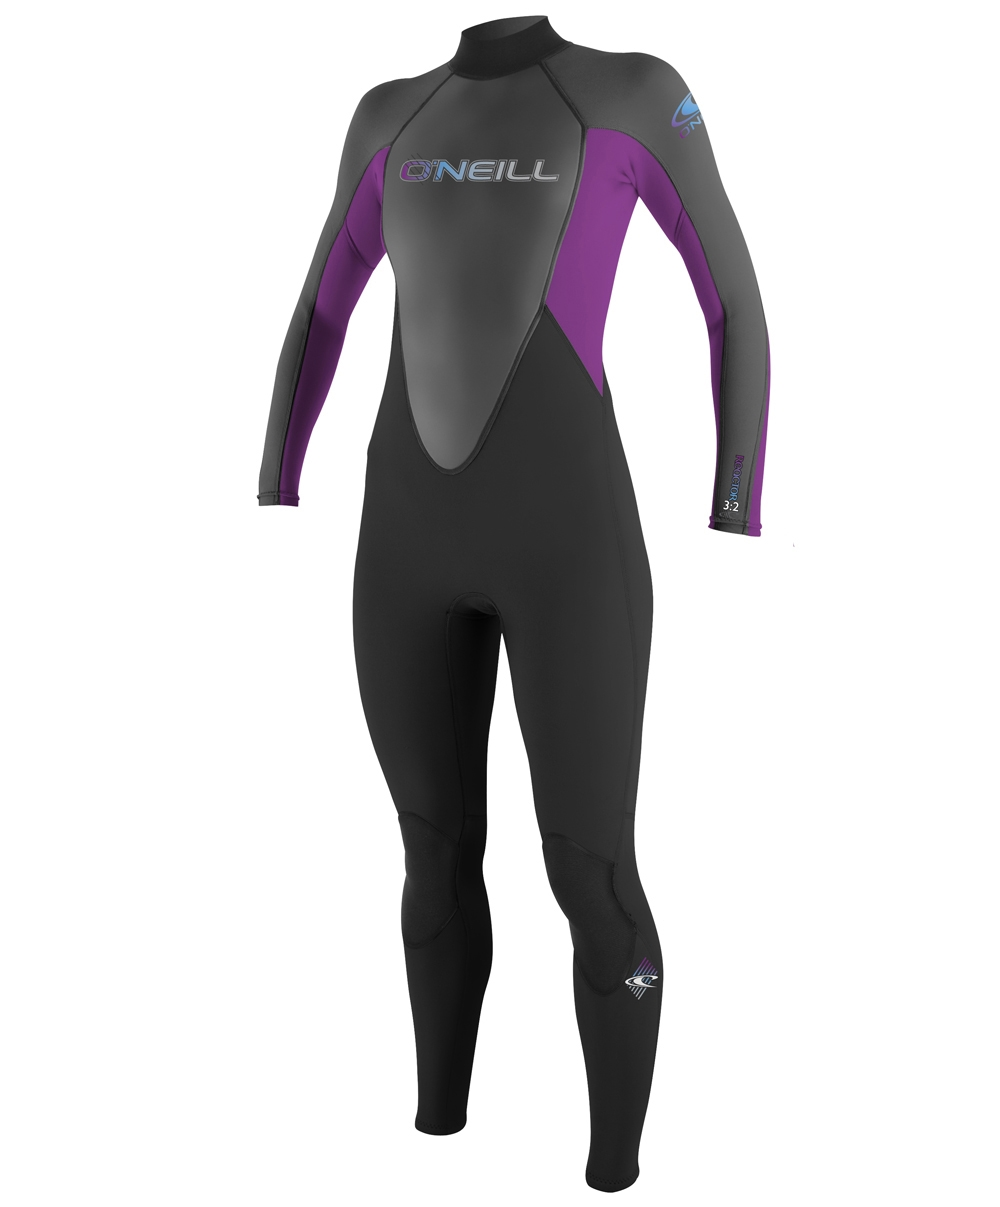 O'NEILL REACTOR 3/2 FULL WOMENS WETSUIT - BLACK - 3800-A05